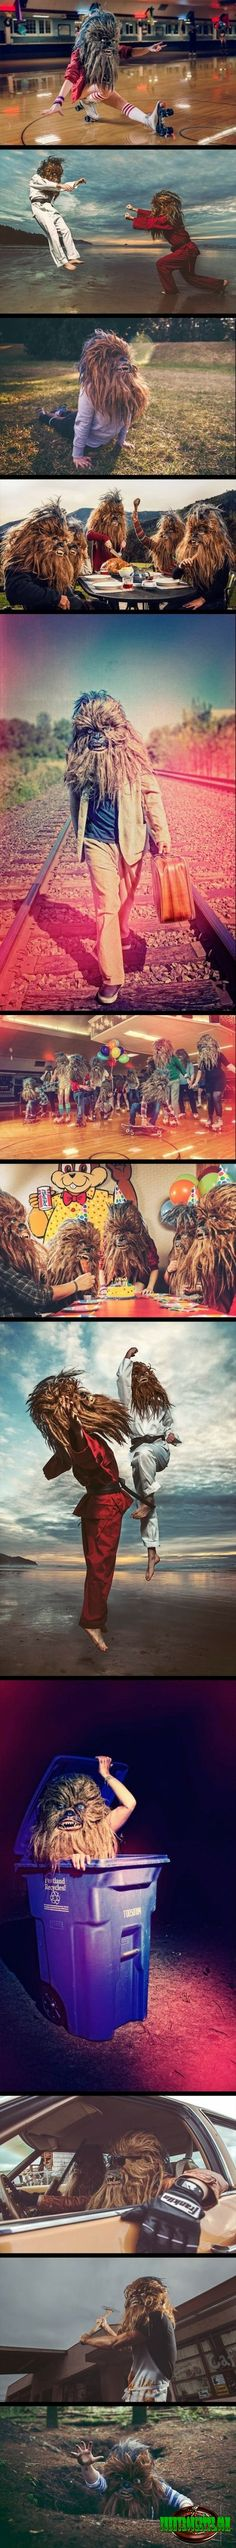 Hahaha, OMG look at this A day with chewbacca